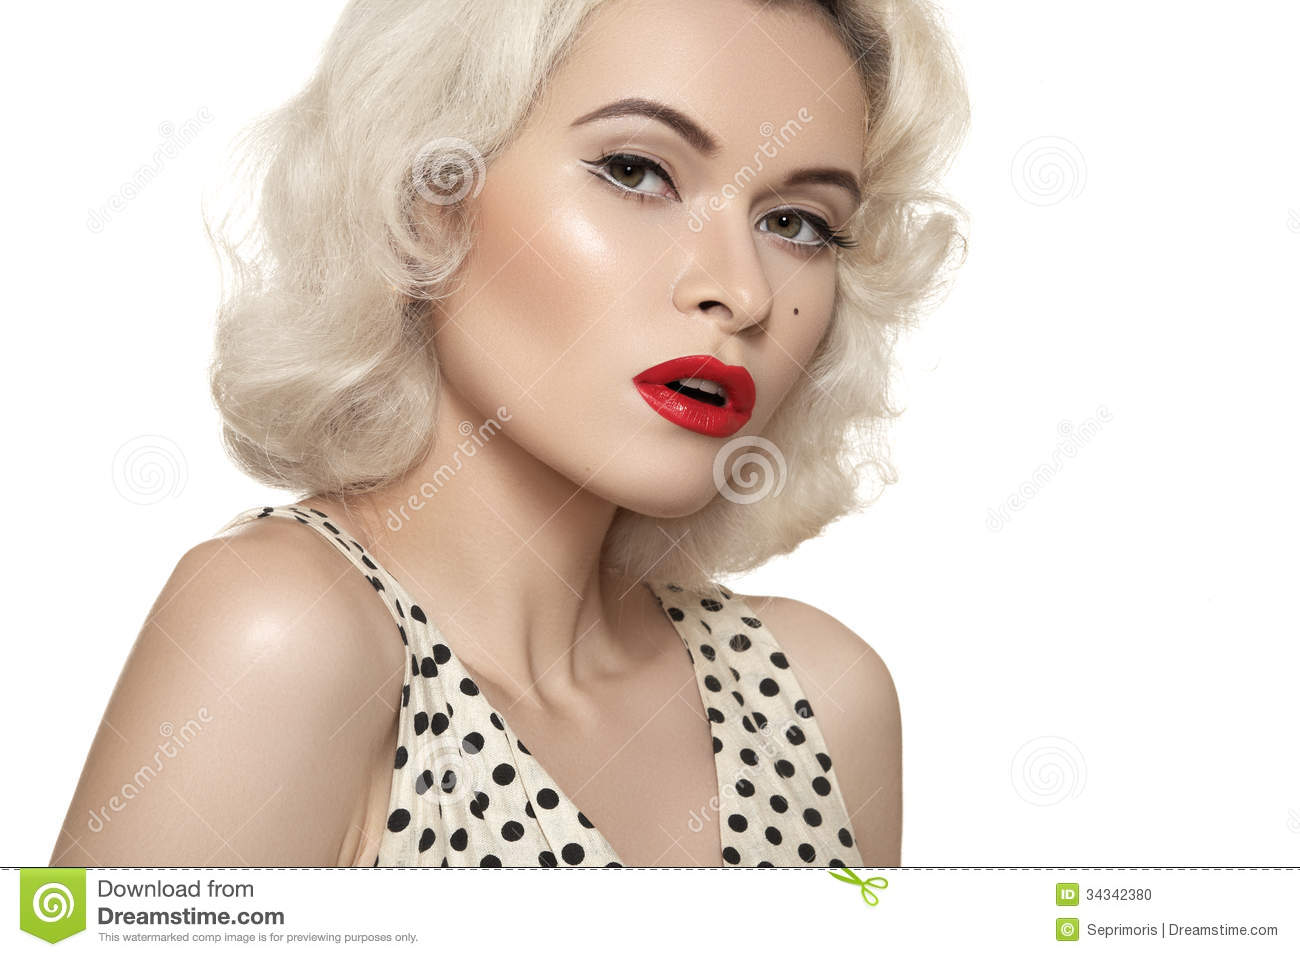 Retro 50s. Old fashioned pin-up model, red lips make-up, blond curly hairstyle